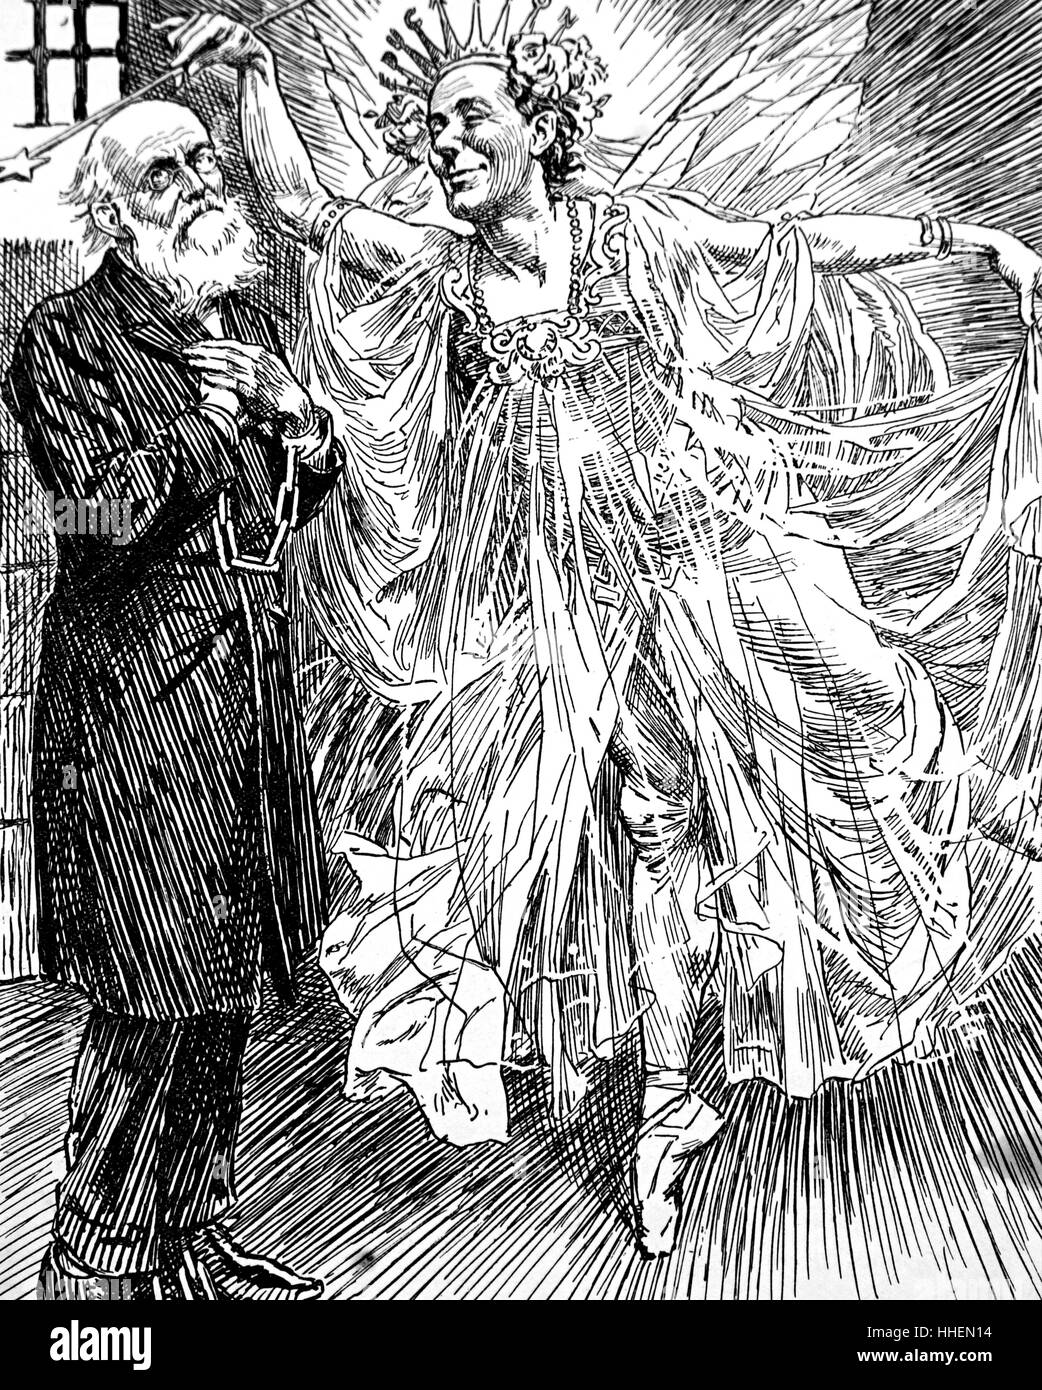 Cartoon depicting a drunken man's hallucination of a male dressed as a fairy queen. Dated 19th Century - Stock Image